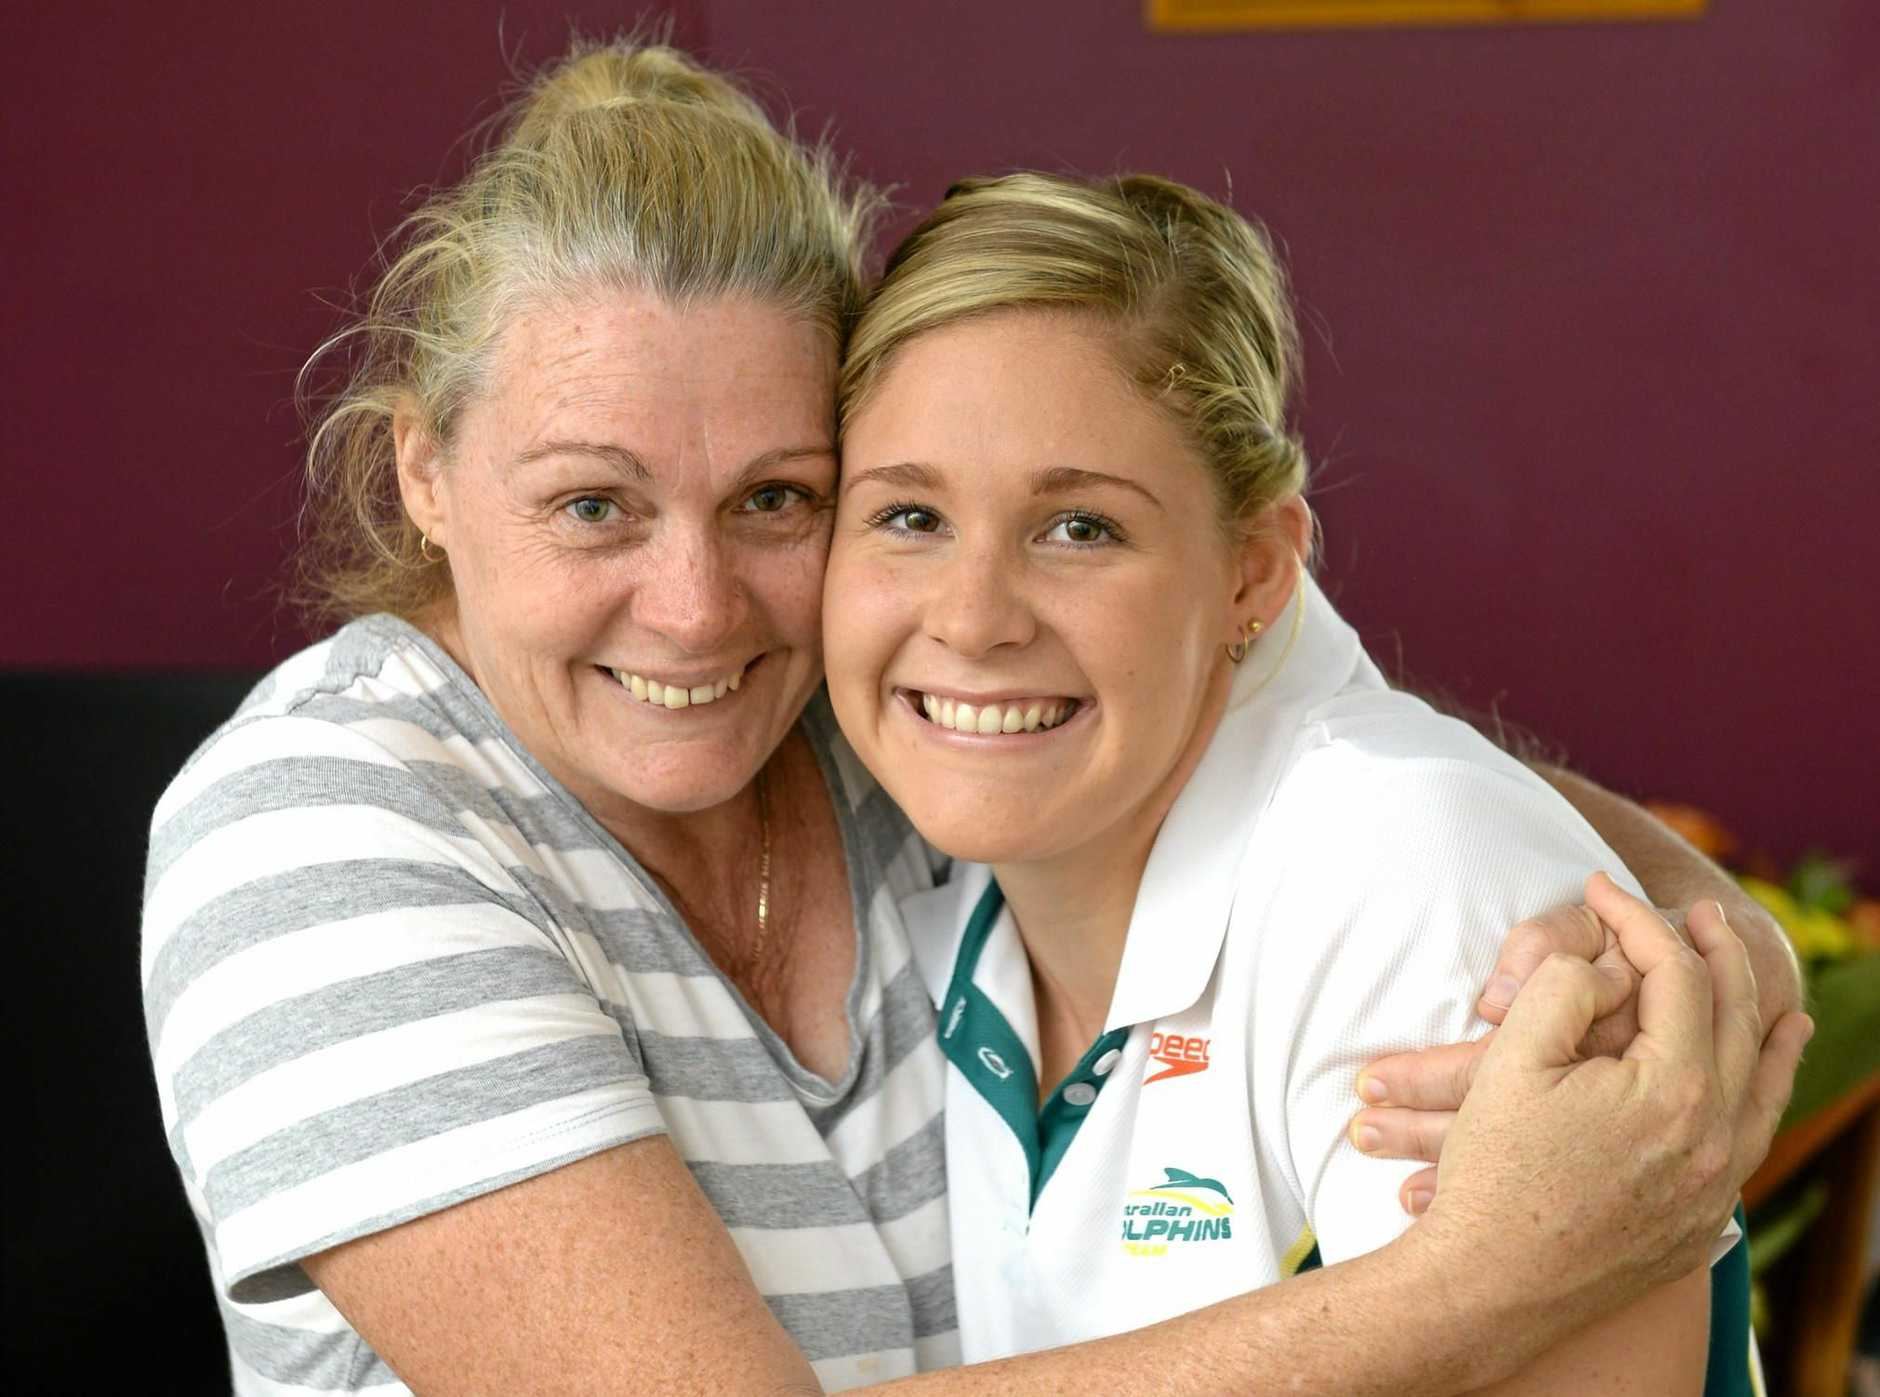 Ipswich's Olympic silver medallist Leah Neale with her proud mum Karen.